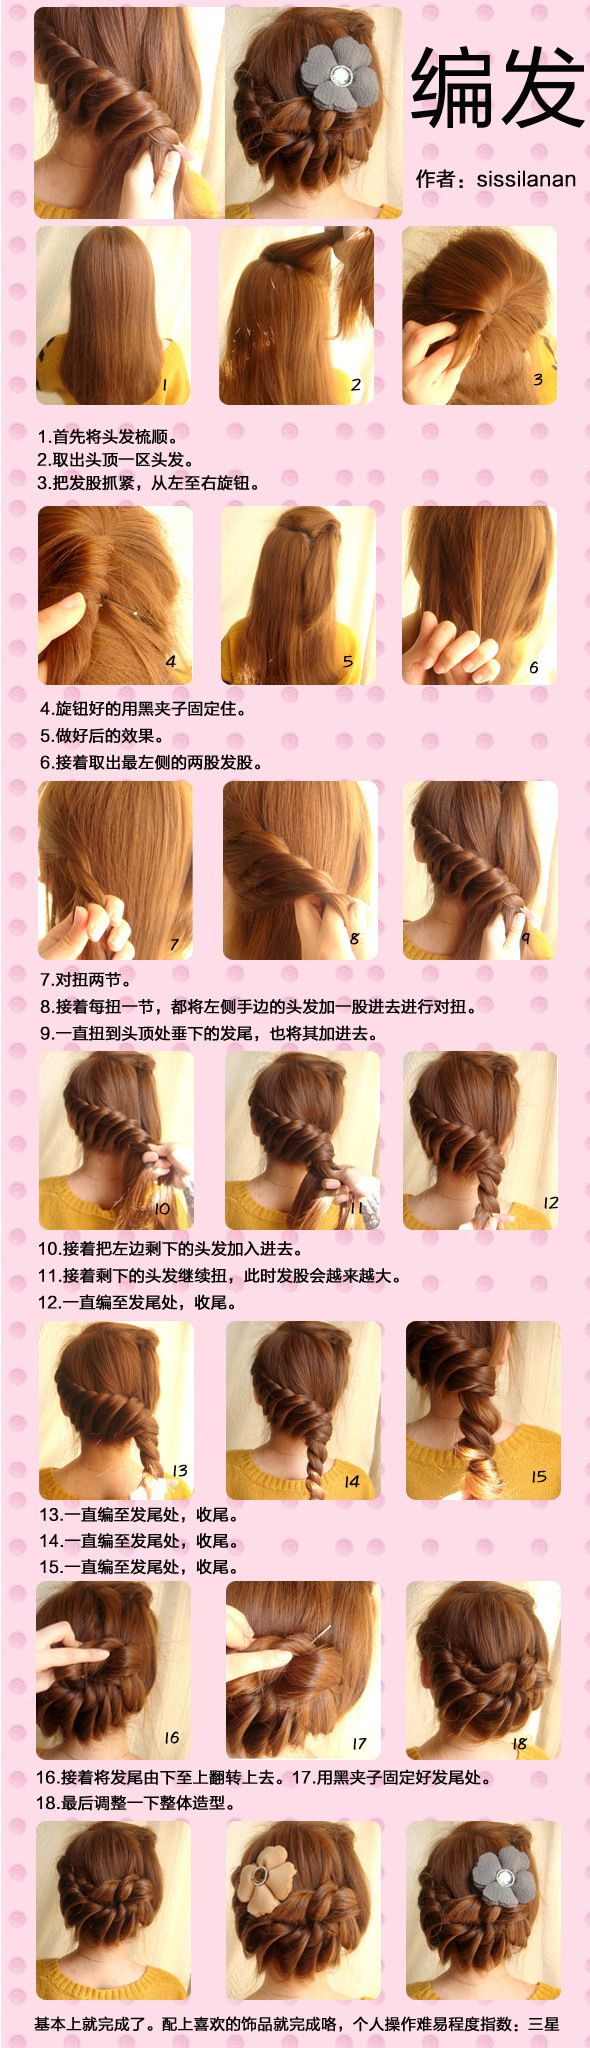 It's in Japanese but you get the idea. What a beautiful up-do!